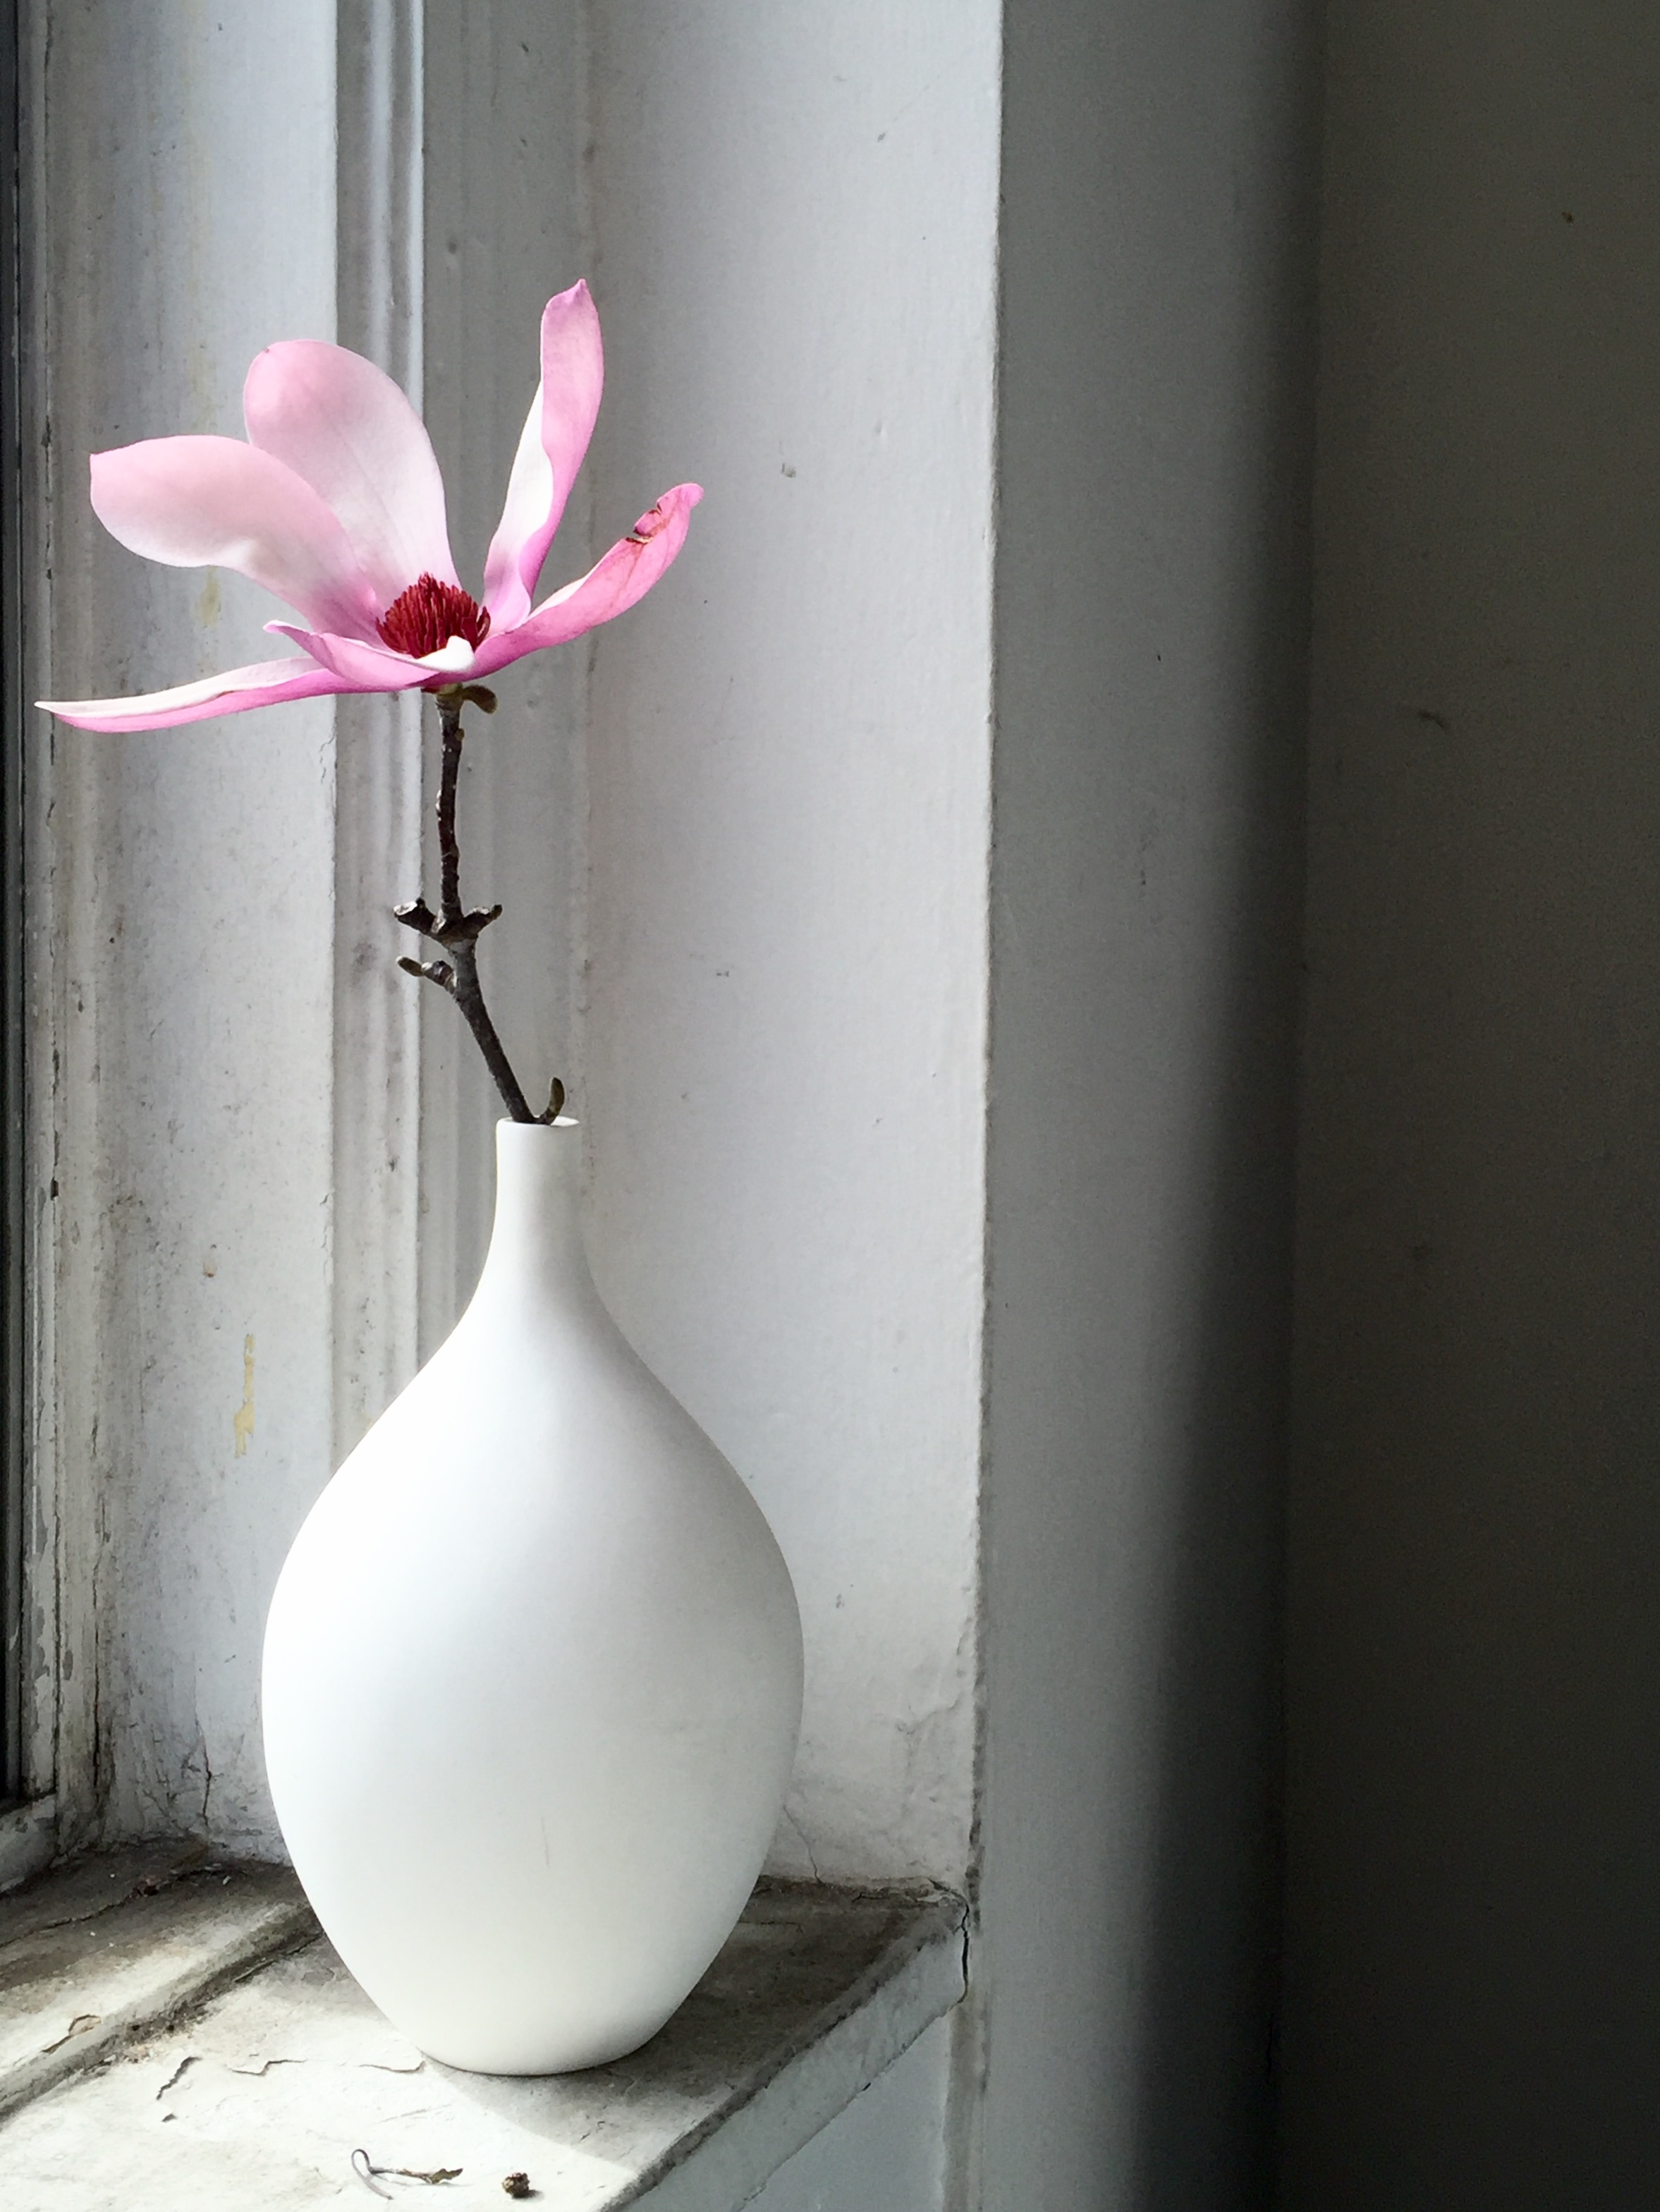 The magnificent magnolia pulled for a shoot